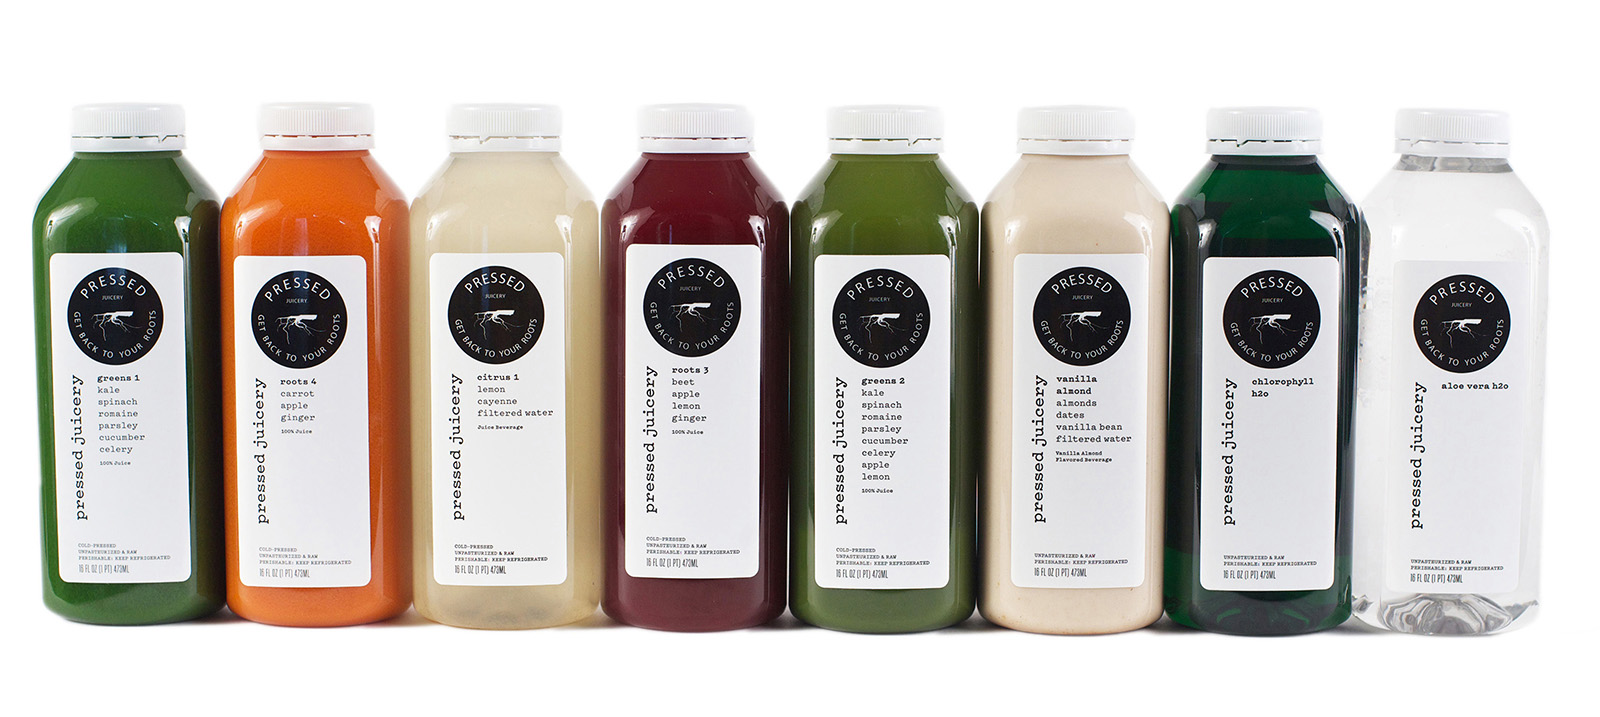 Pressed Juicery Three-Day Juice Cleanse Review